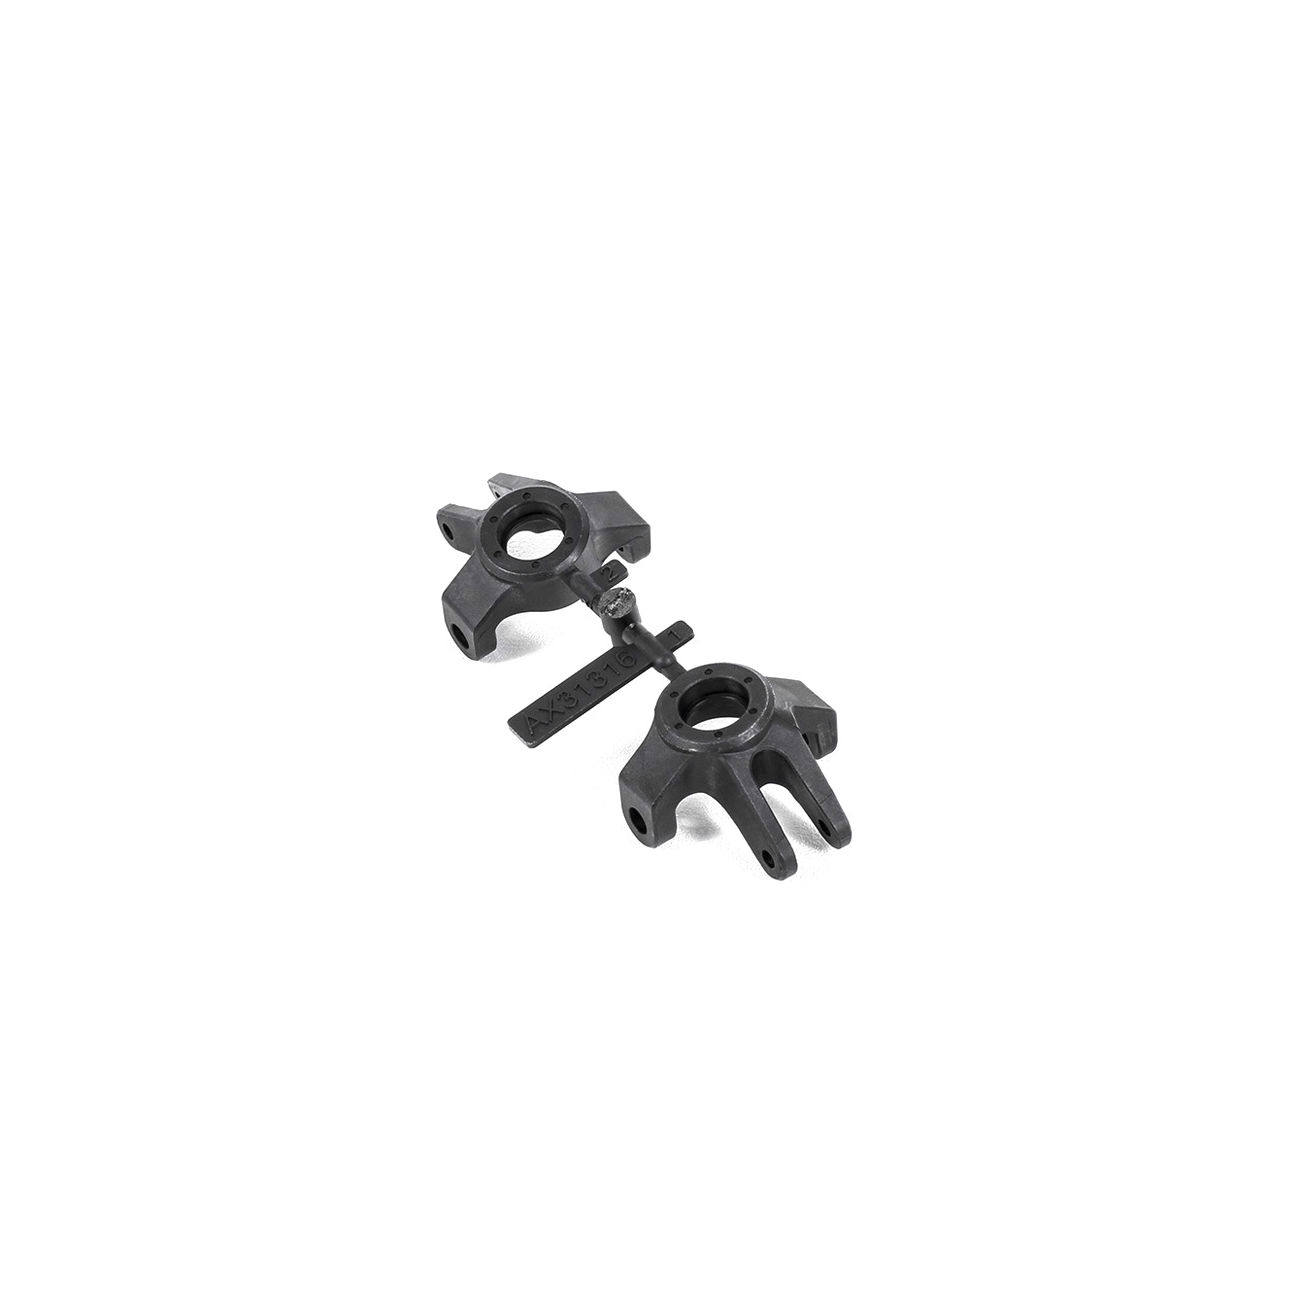 Axial AR60 OCP Double Shear Lenkhebel Set (2 Stück) AX31316 0